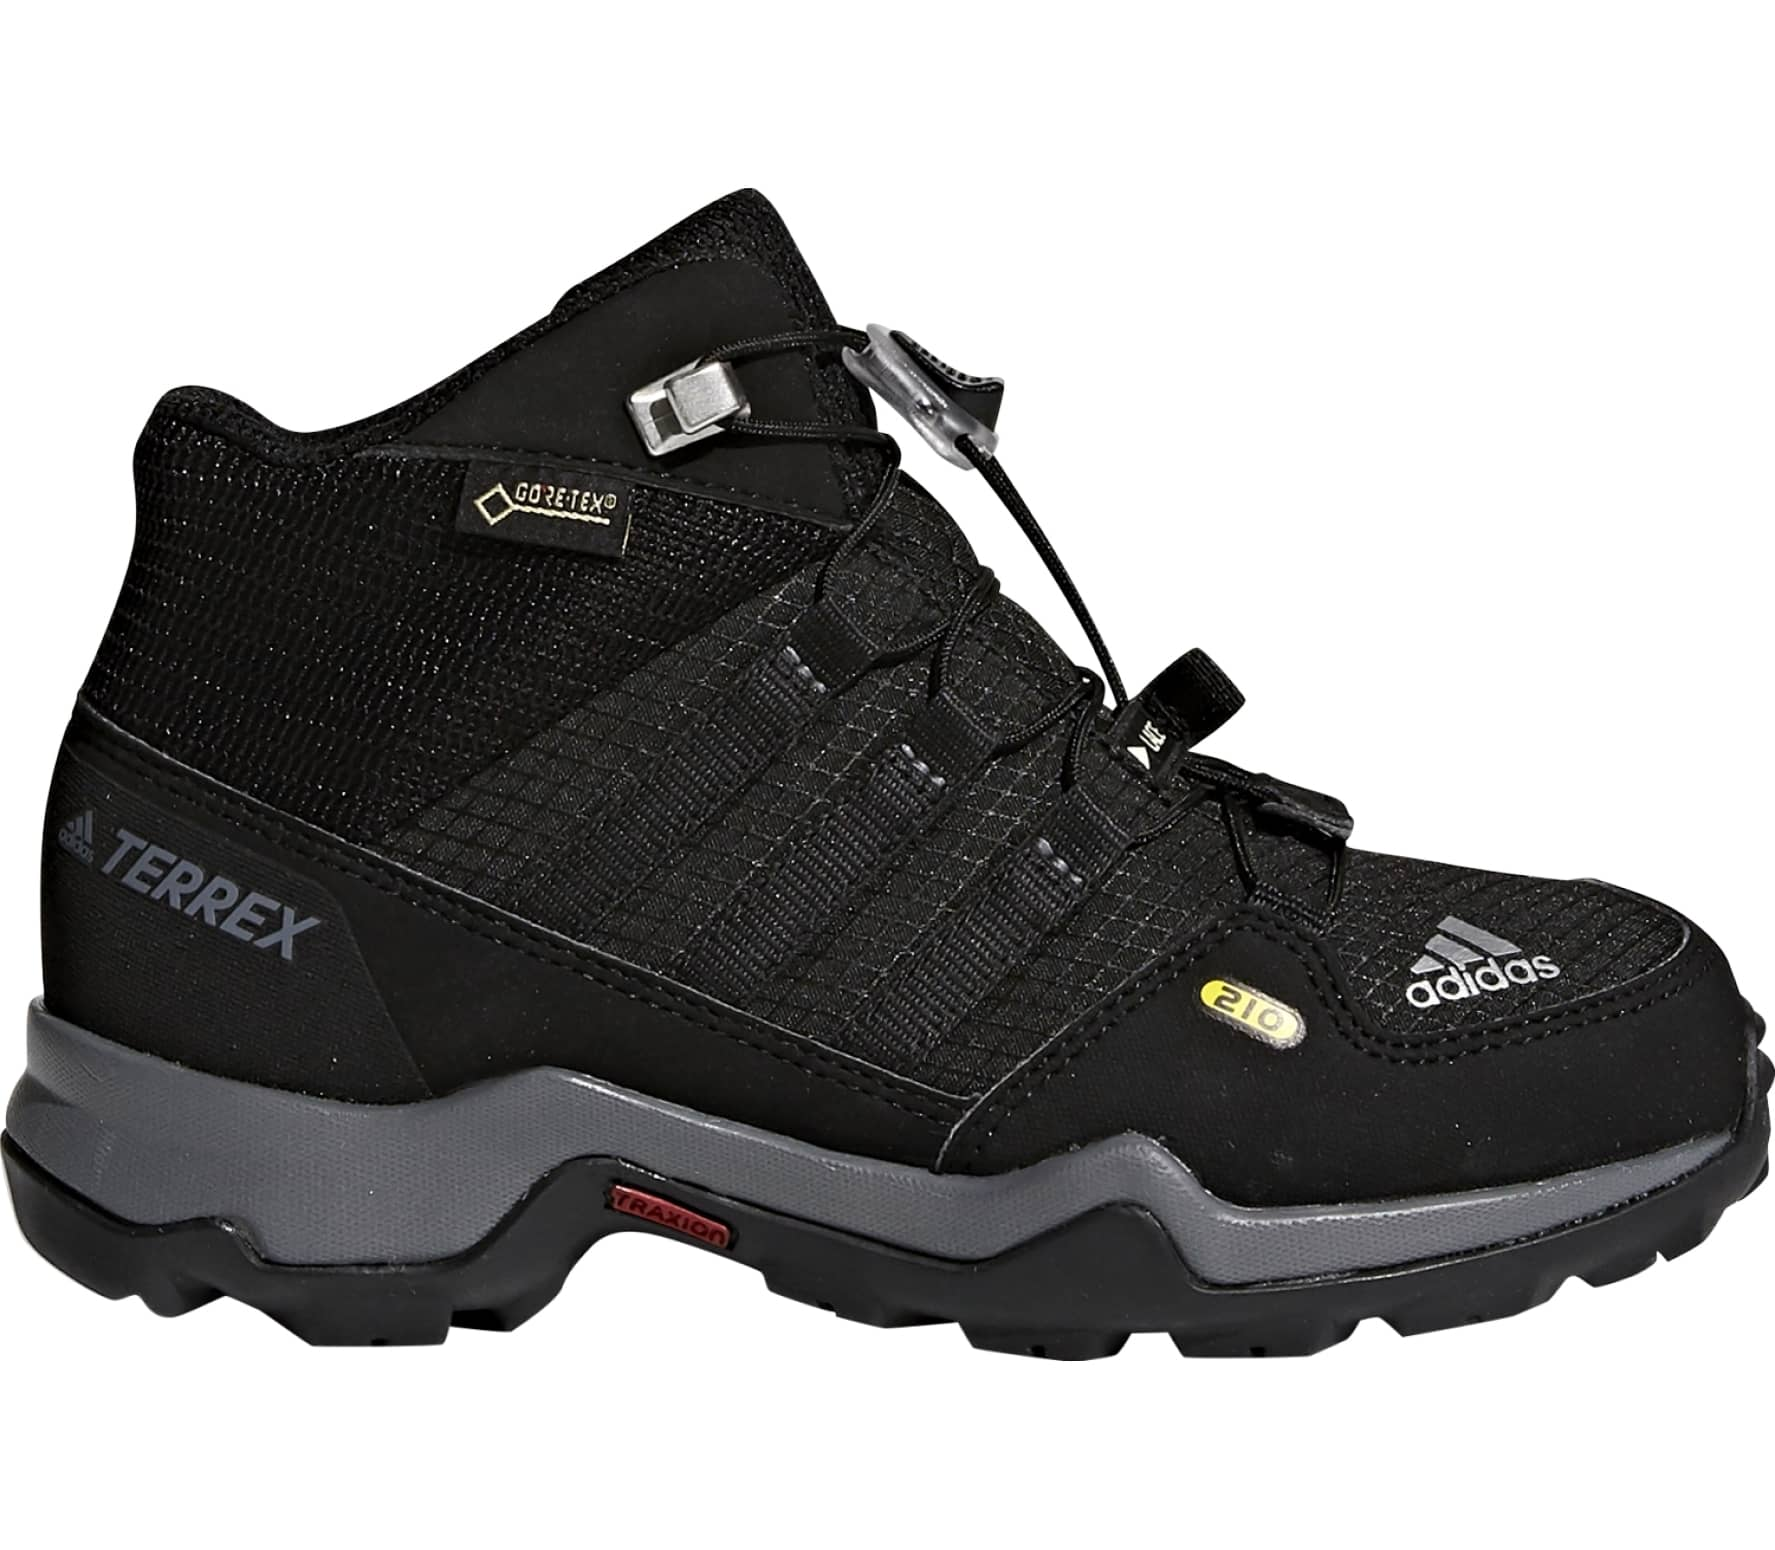 84b3257a39327 Adidas - Terrex Mid GTX hiking shoes for kids (black) - buy it at ...